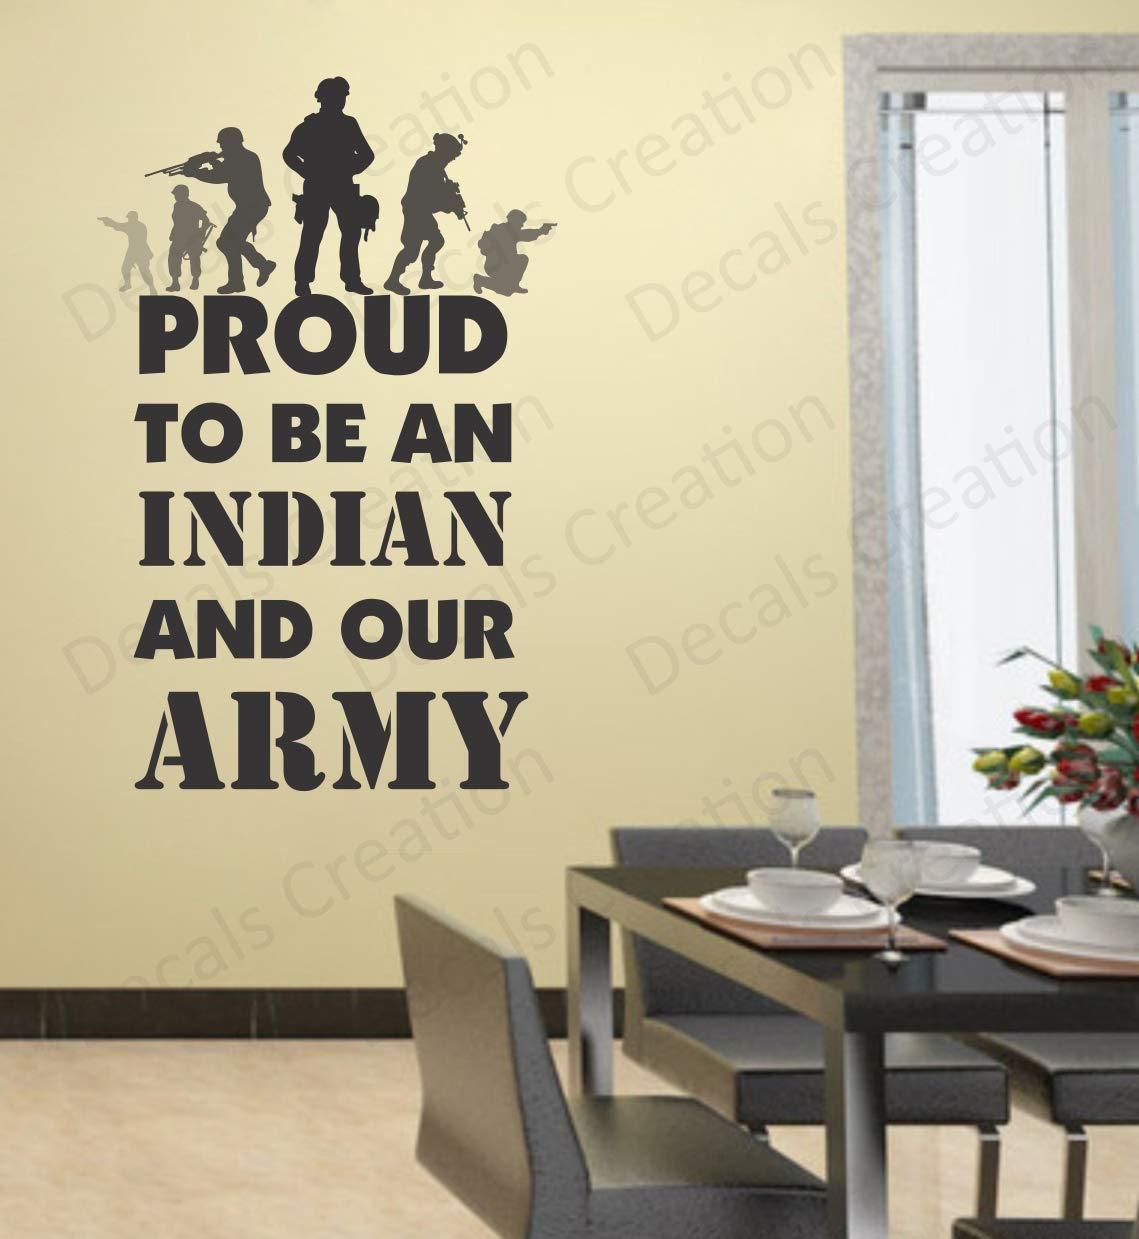 Buy Decals Creation Vinyl Military Wall Sticker 29 92 X 29 92 X 0 39 Inches Multicolour Online At Low Prices In India Amazon In